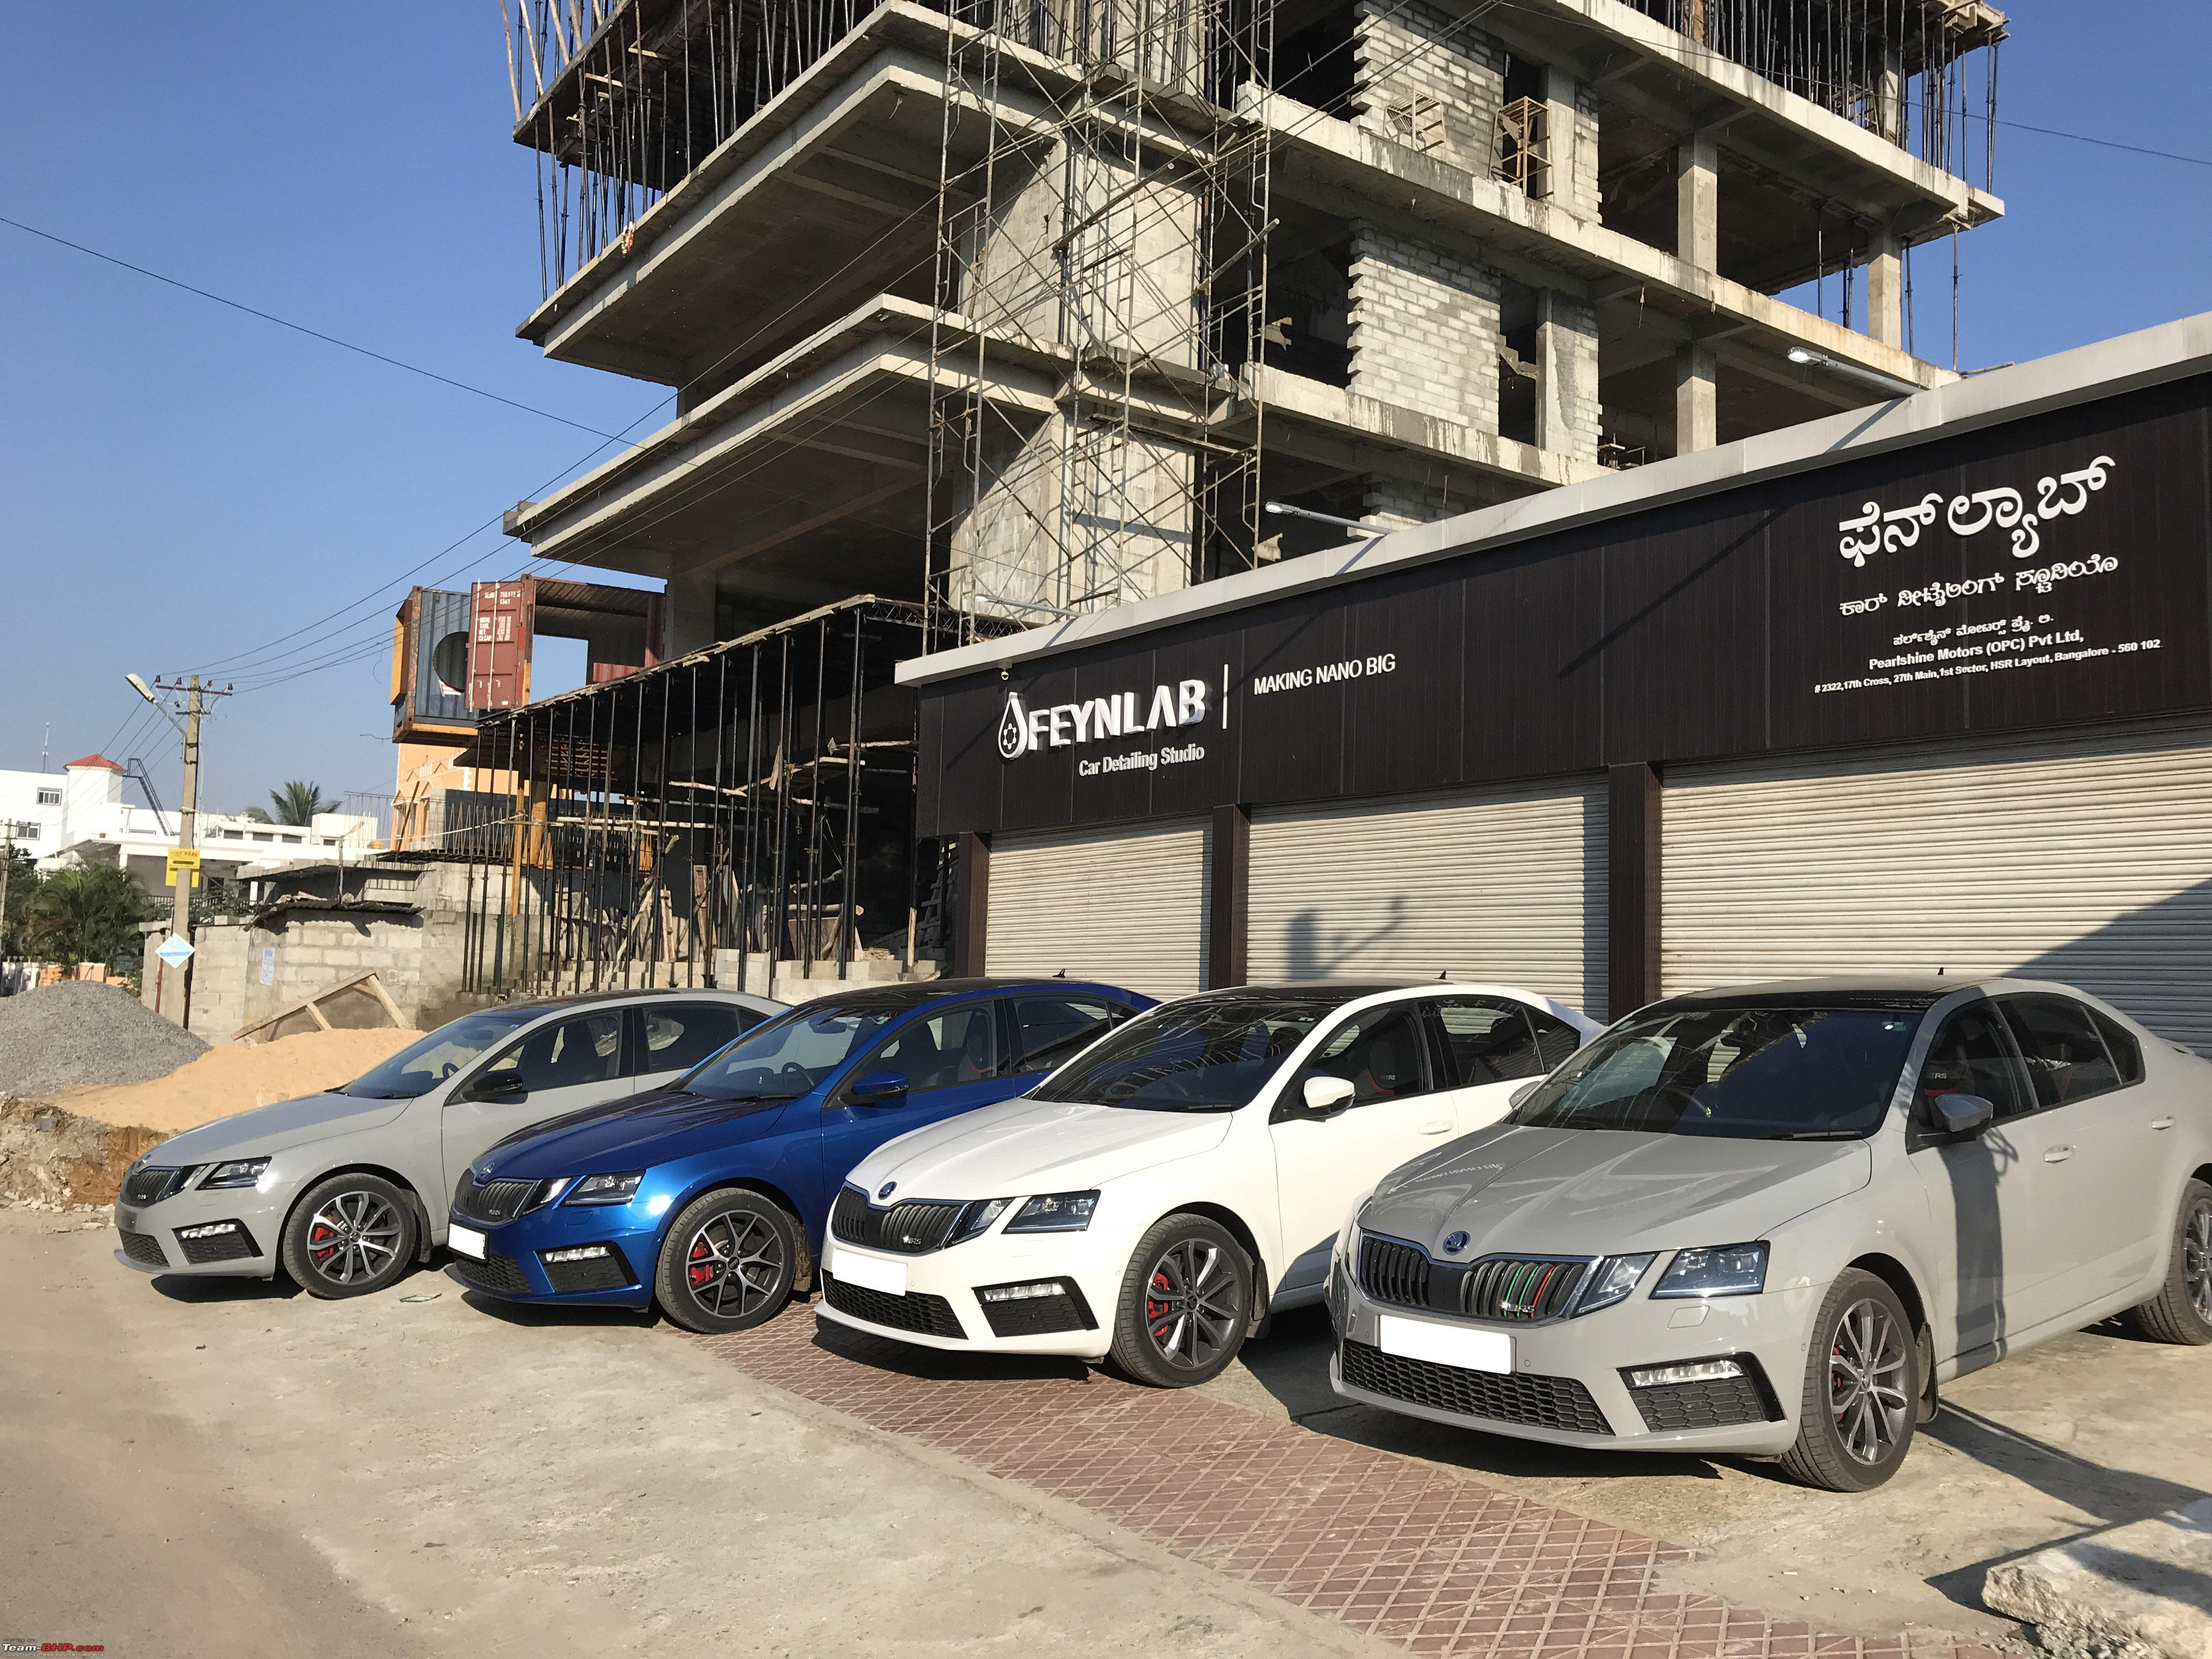 2017 Skoda Octavia vRS: 1 year and 36,000 kms, now with